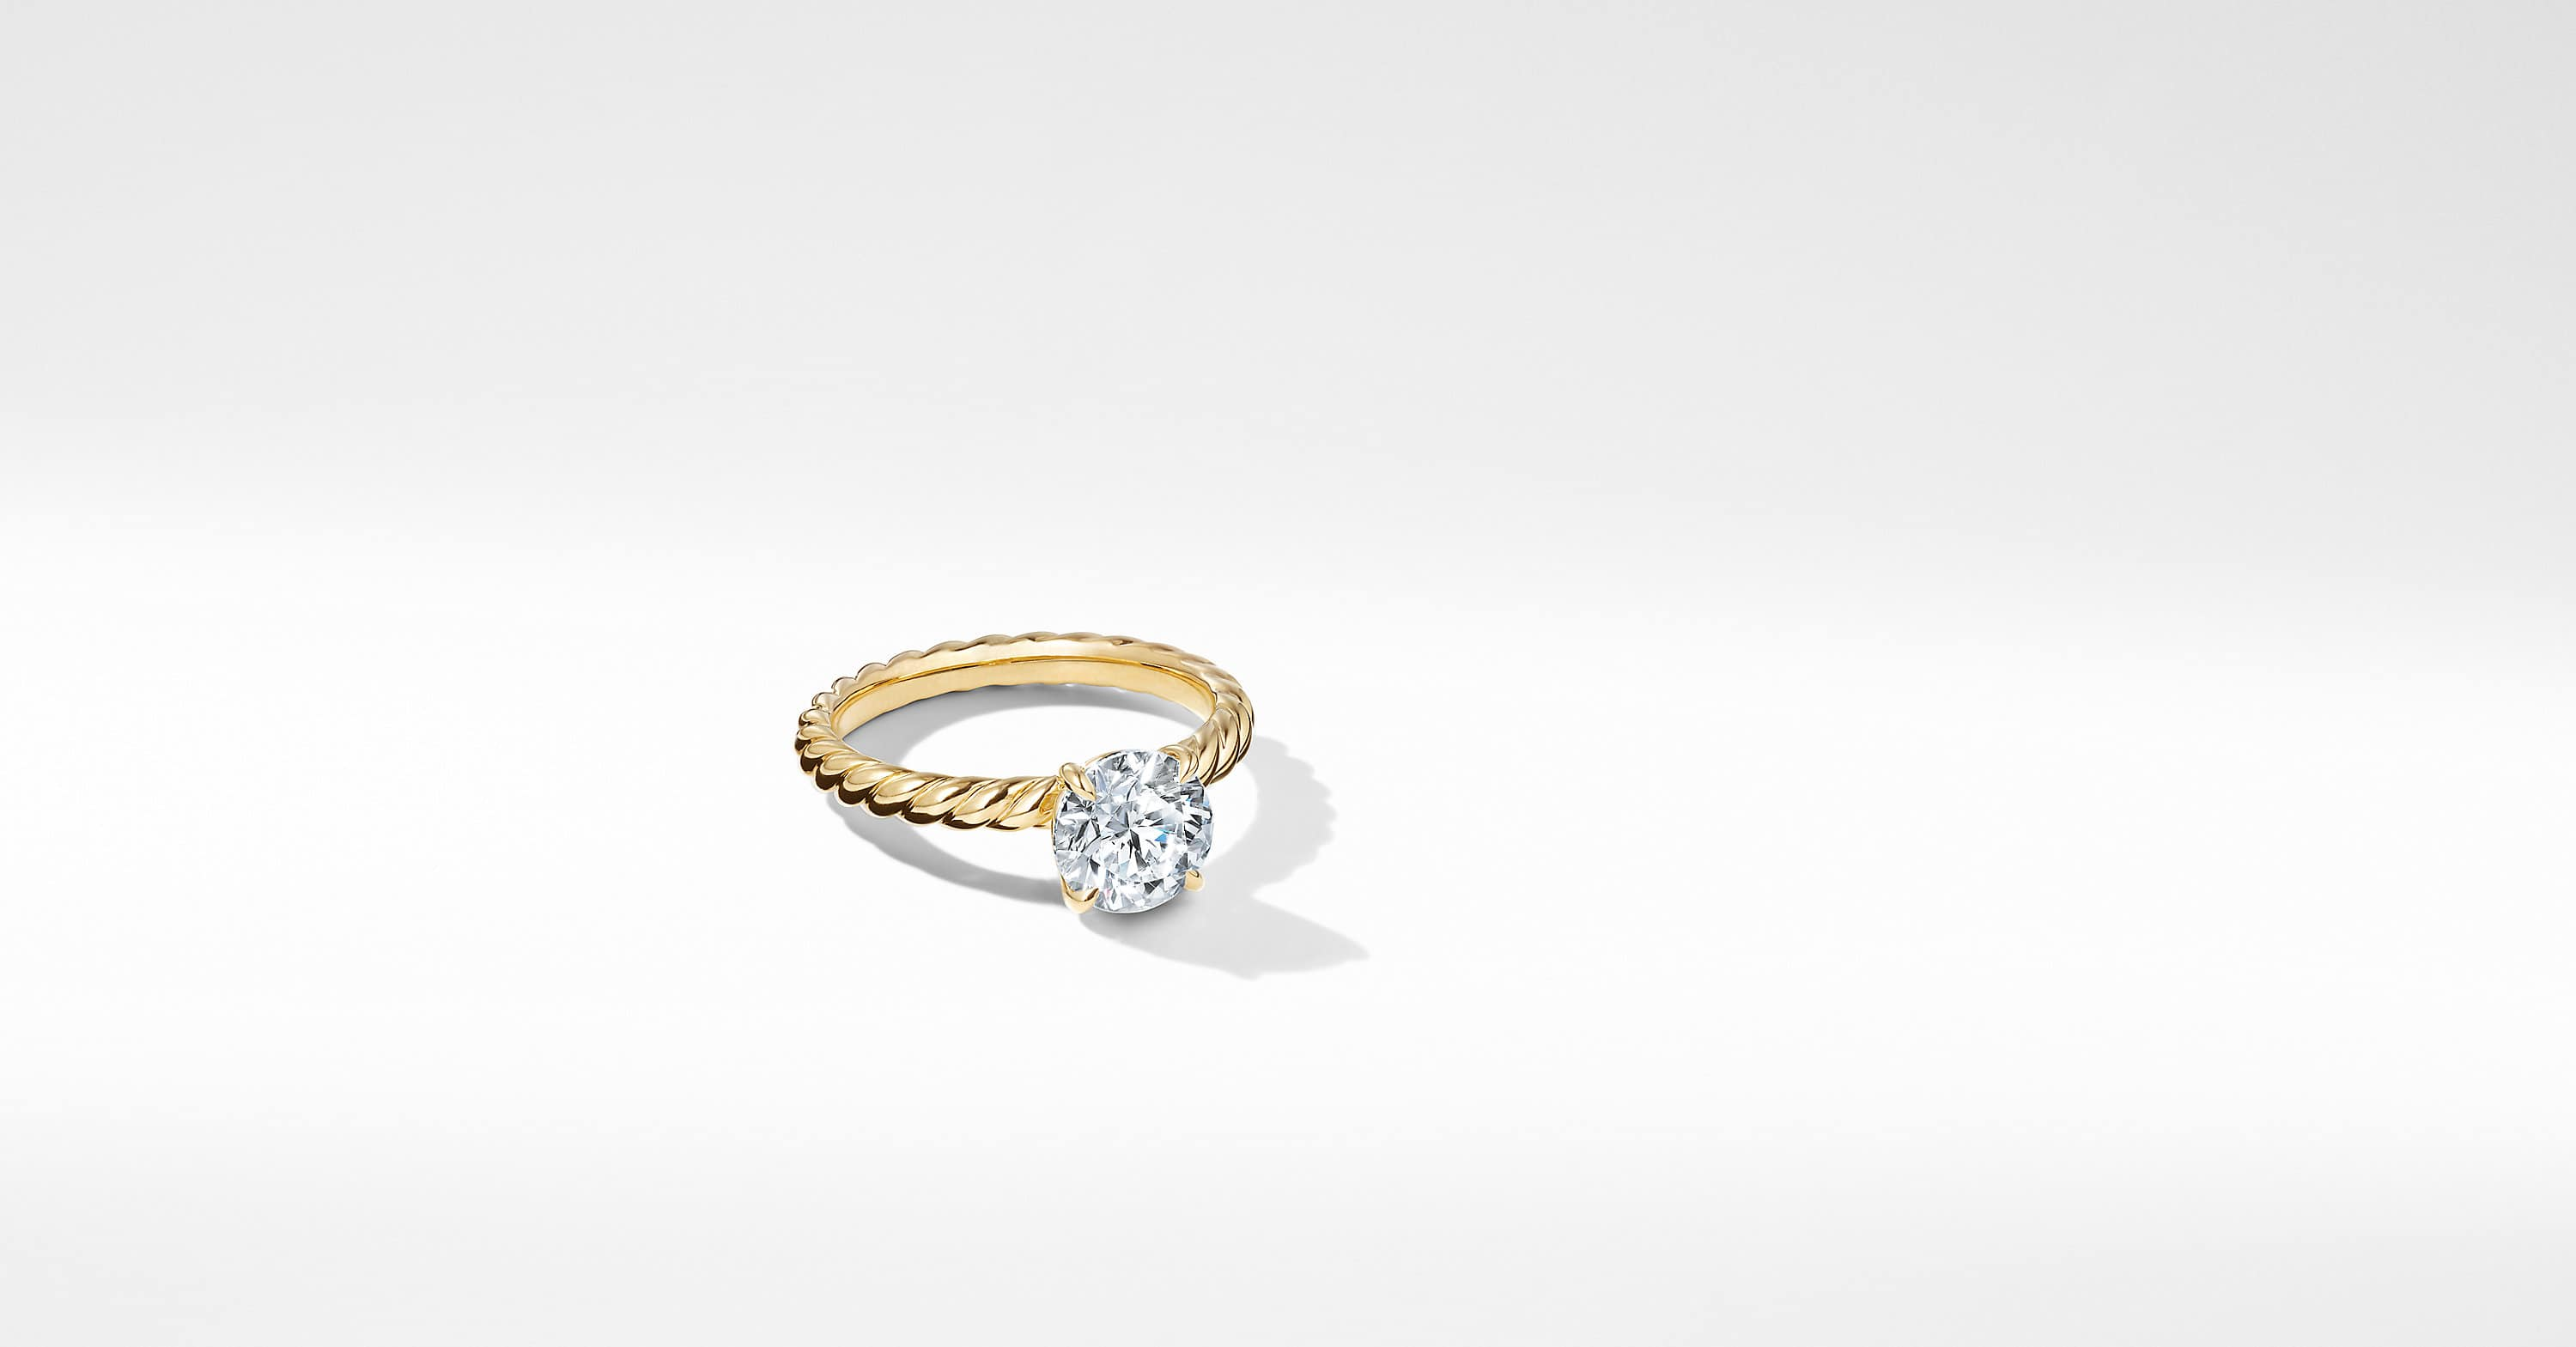 DY Unity Cable Engagement Ring in 18K Yellow Gold, Round